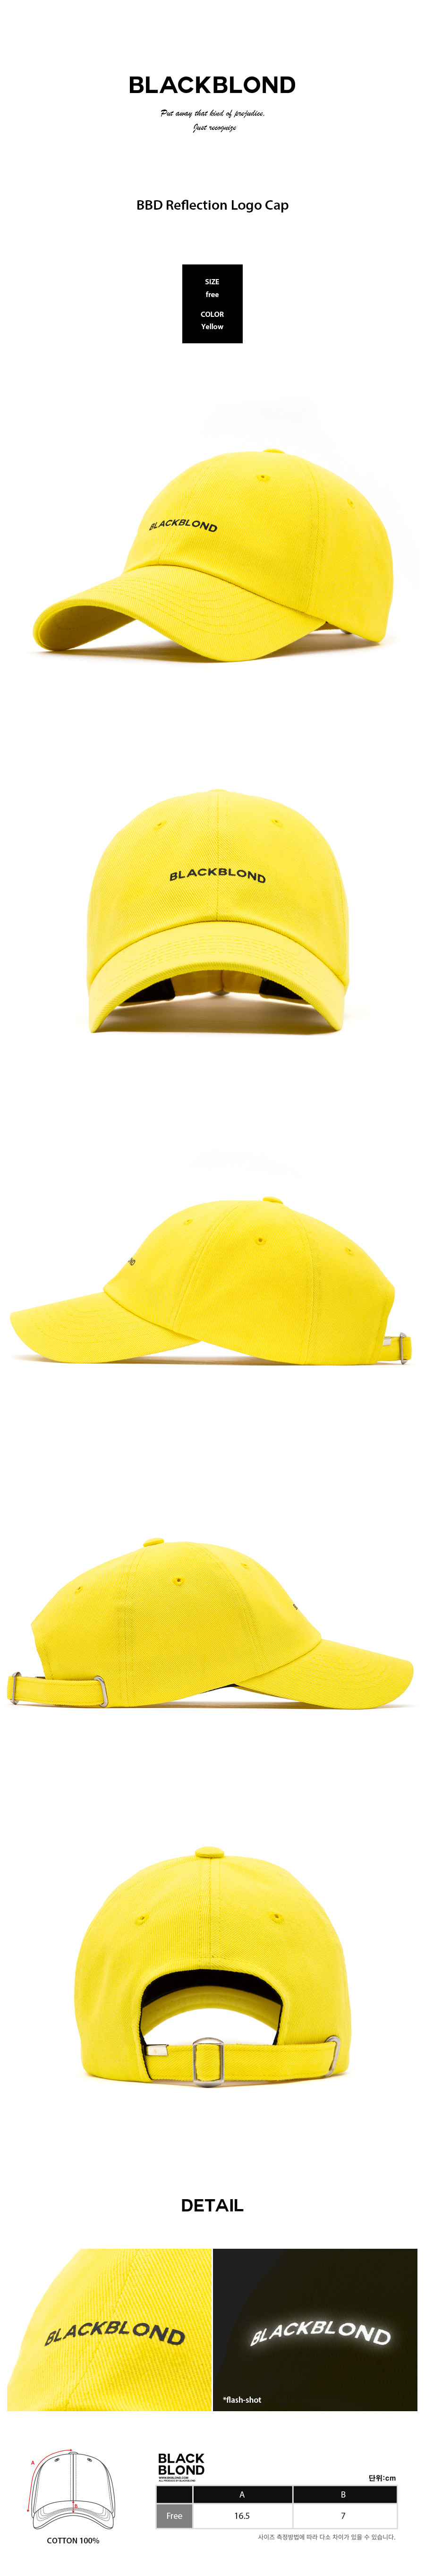 BLACKBLOND - BBD Reflection Logo Cap (Yellow)